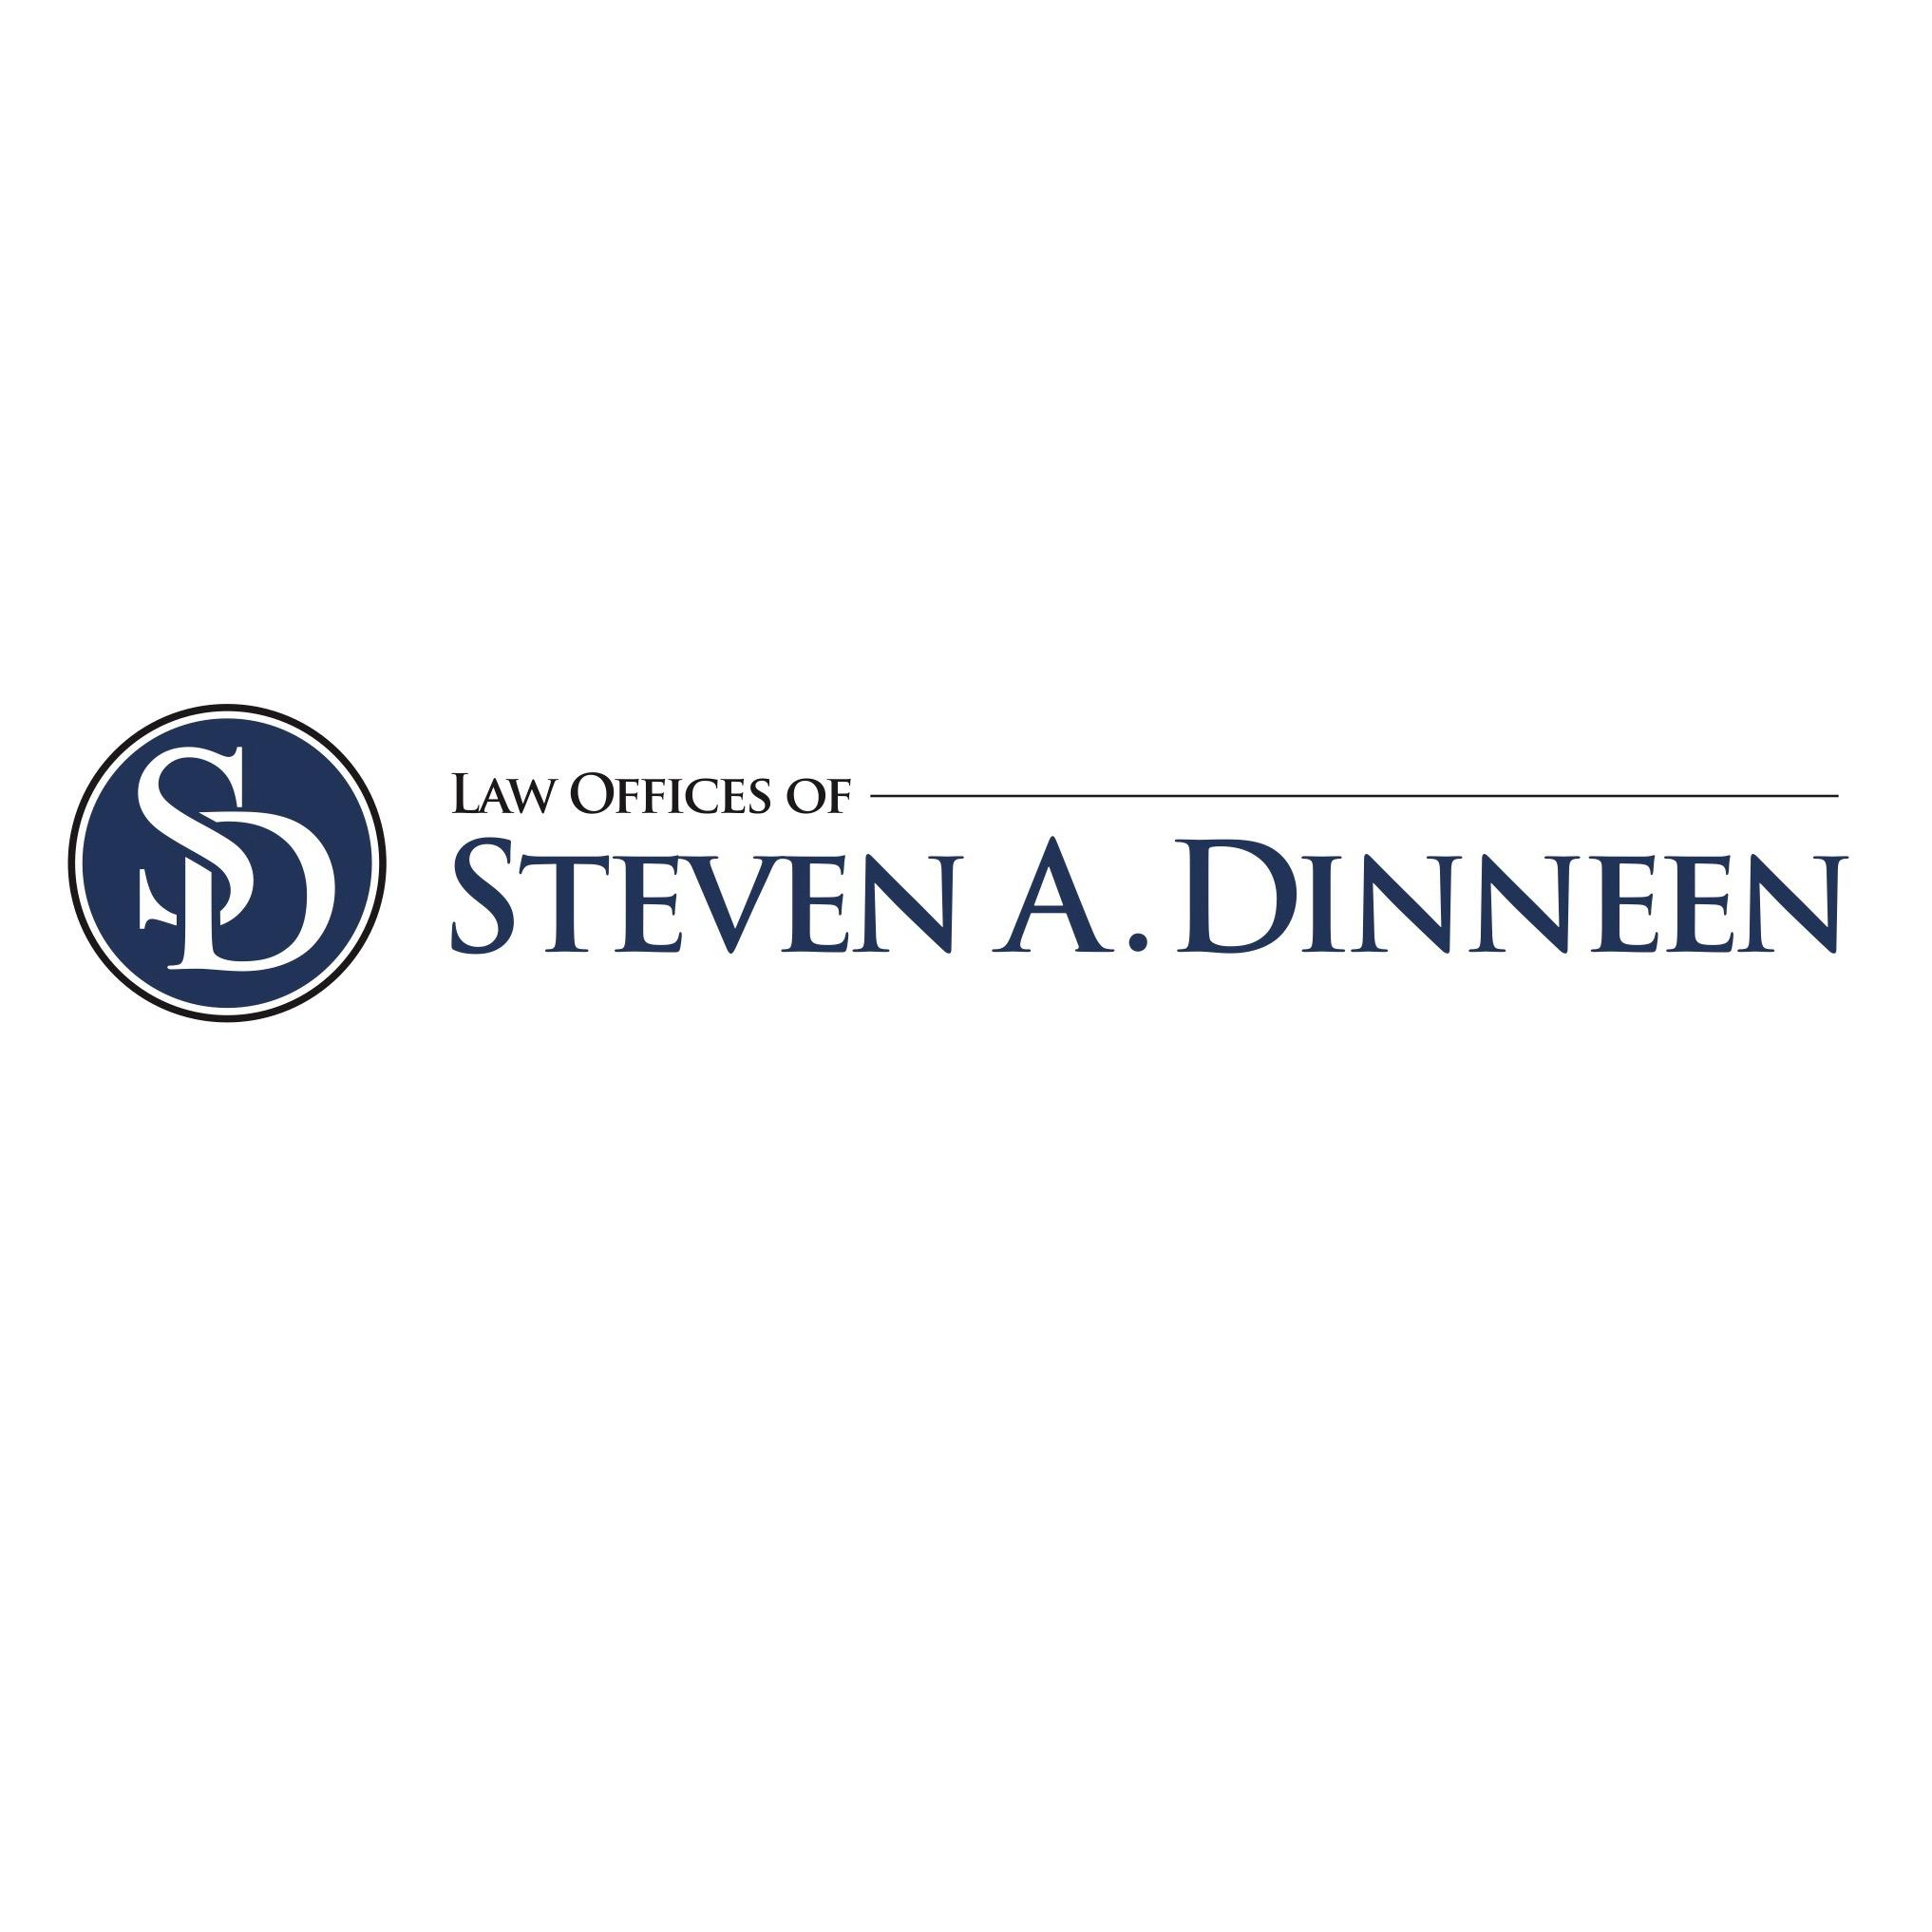 Law Offices of Steven A. Dinneen